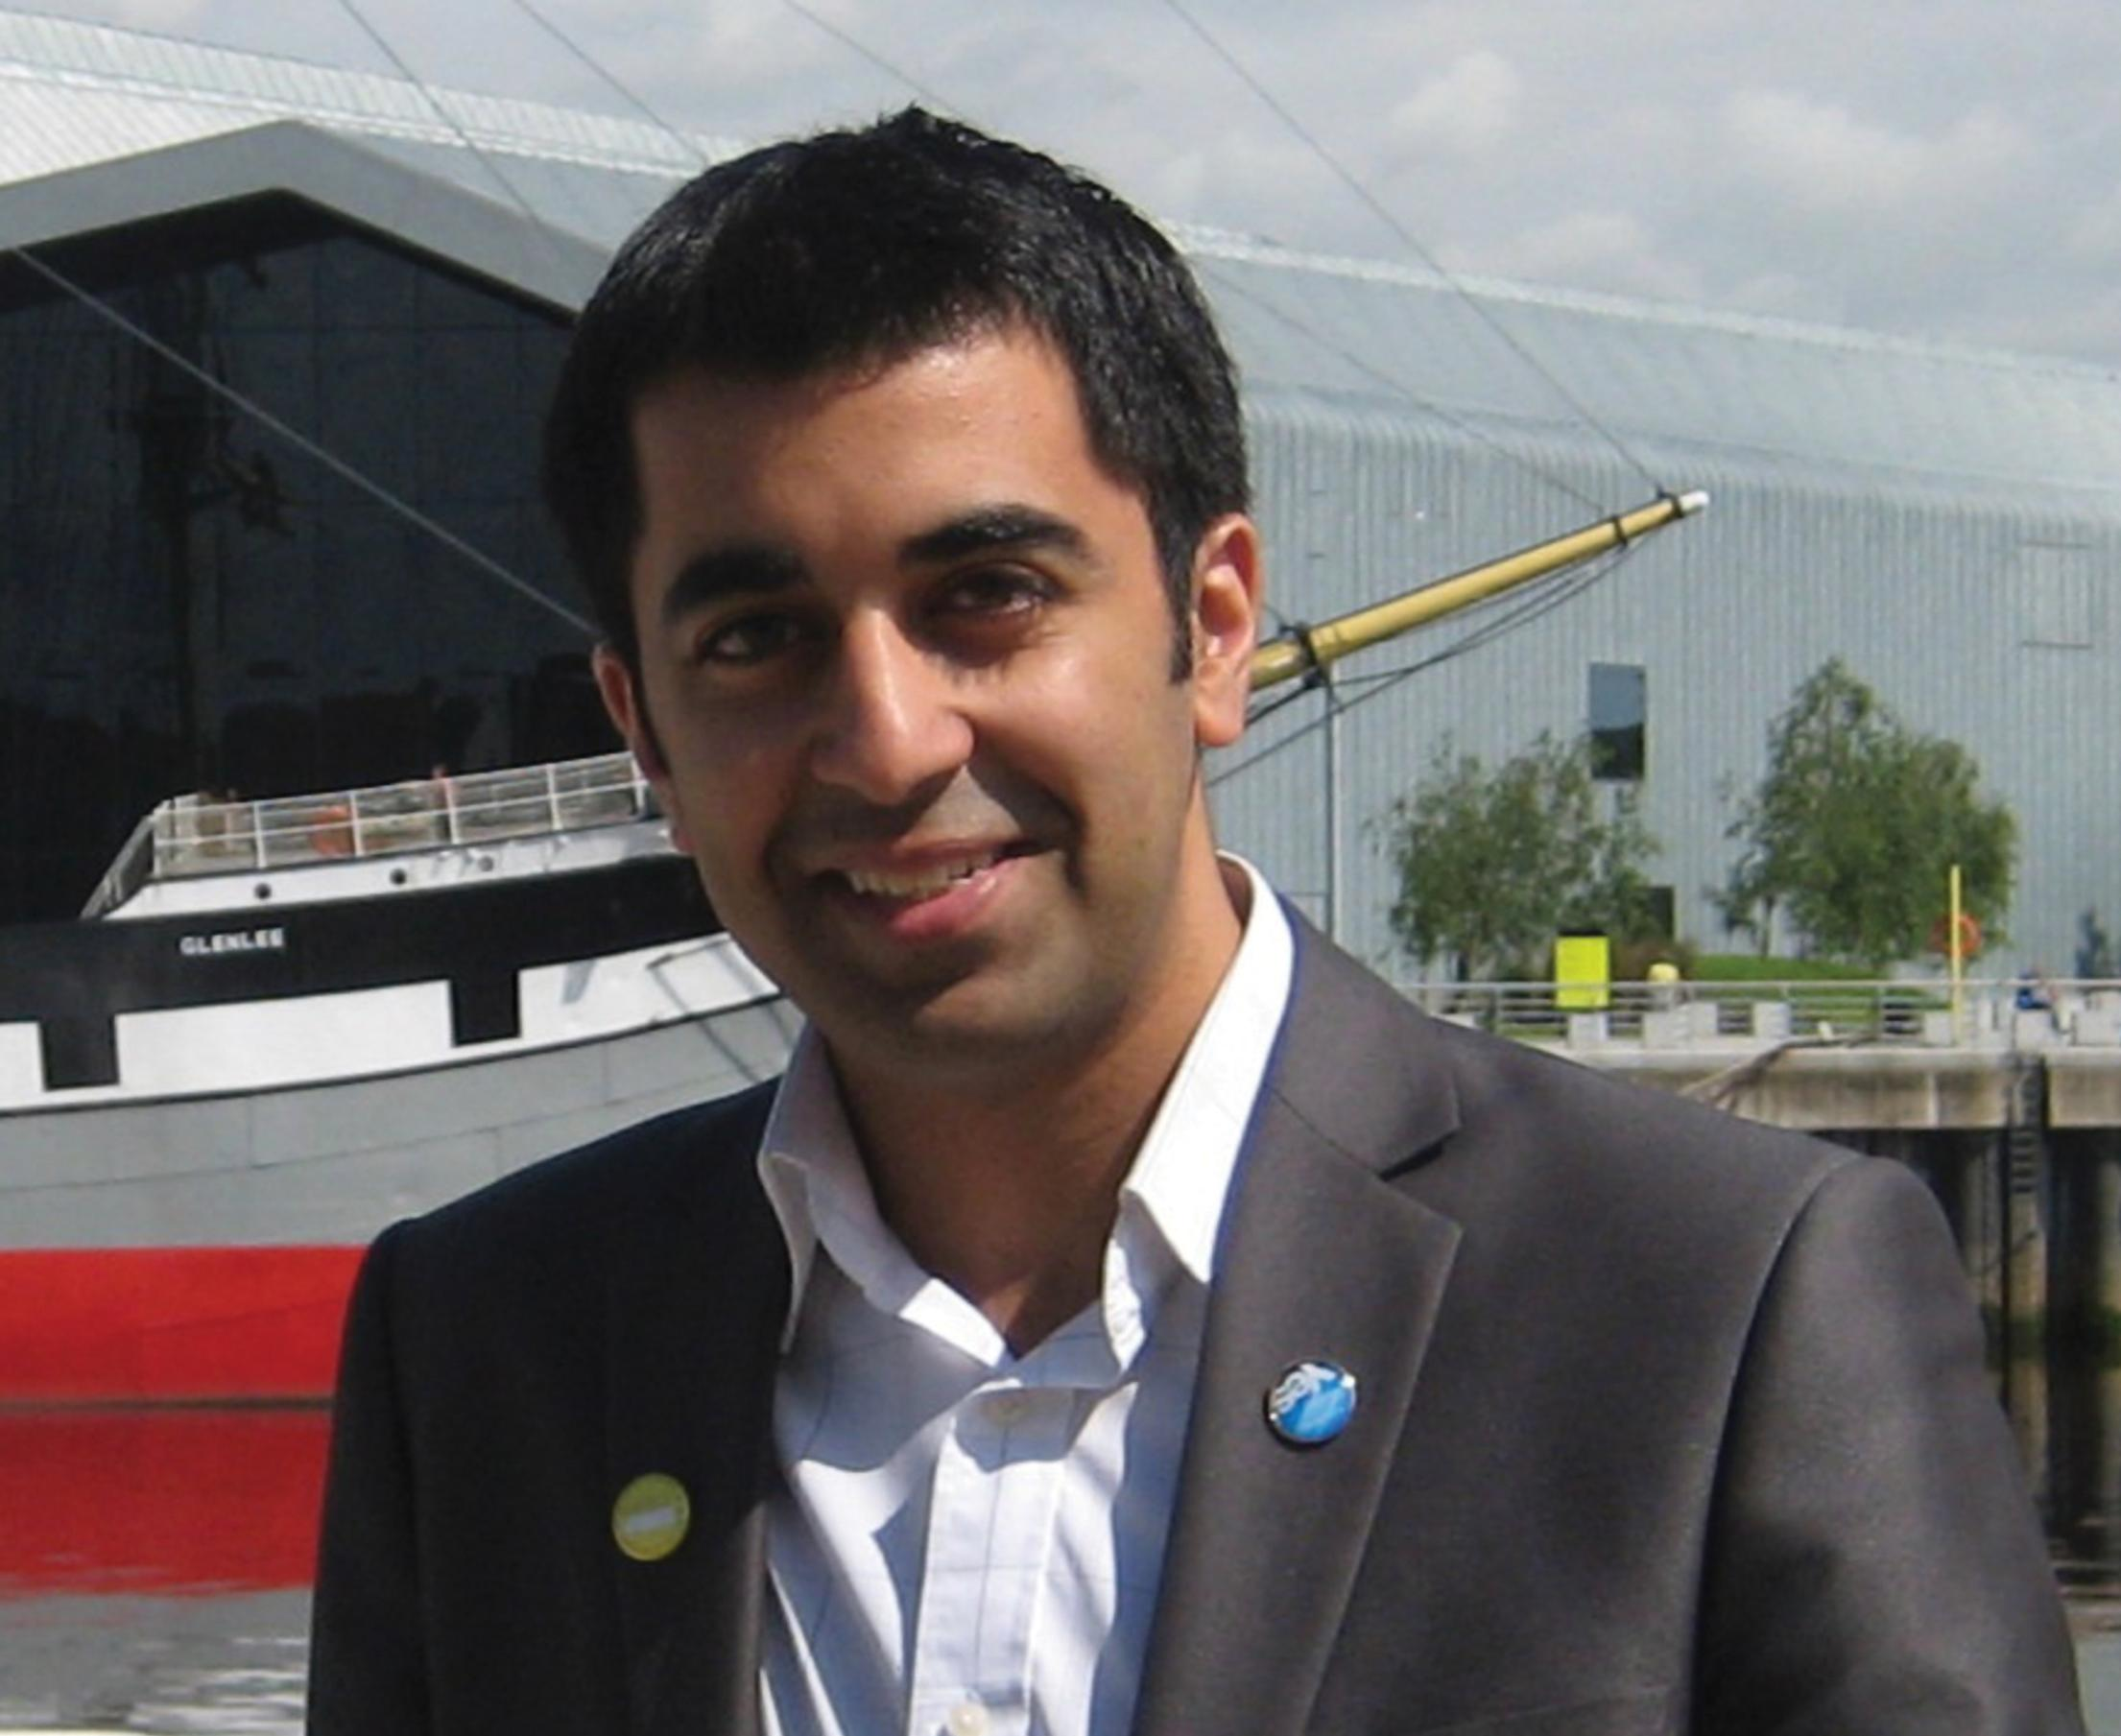 Humza Yousaf: Said he accepted criticisms over the Levenmouth scheme